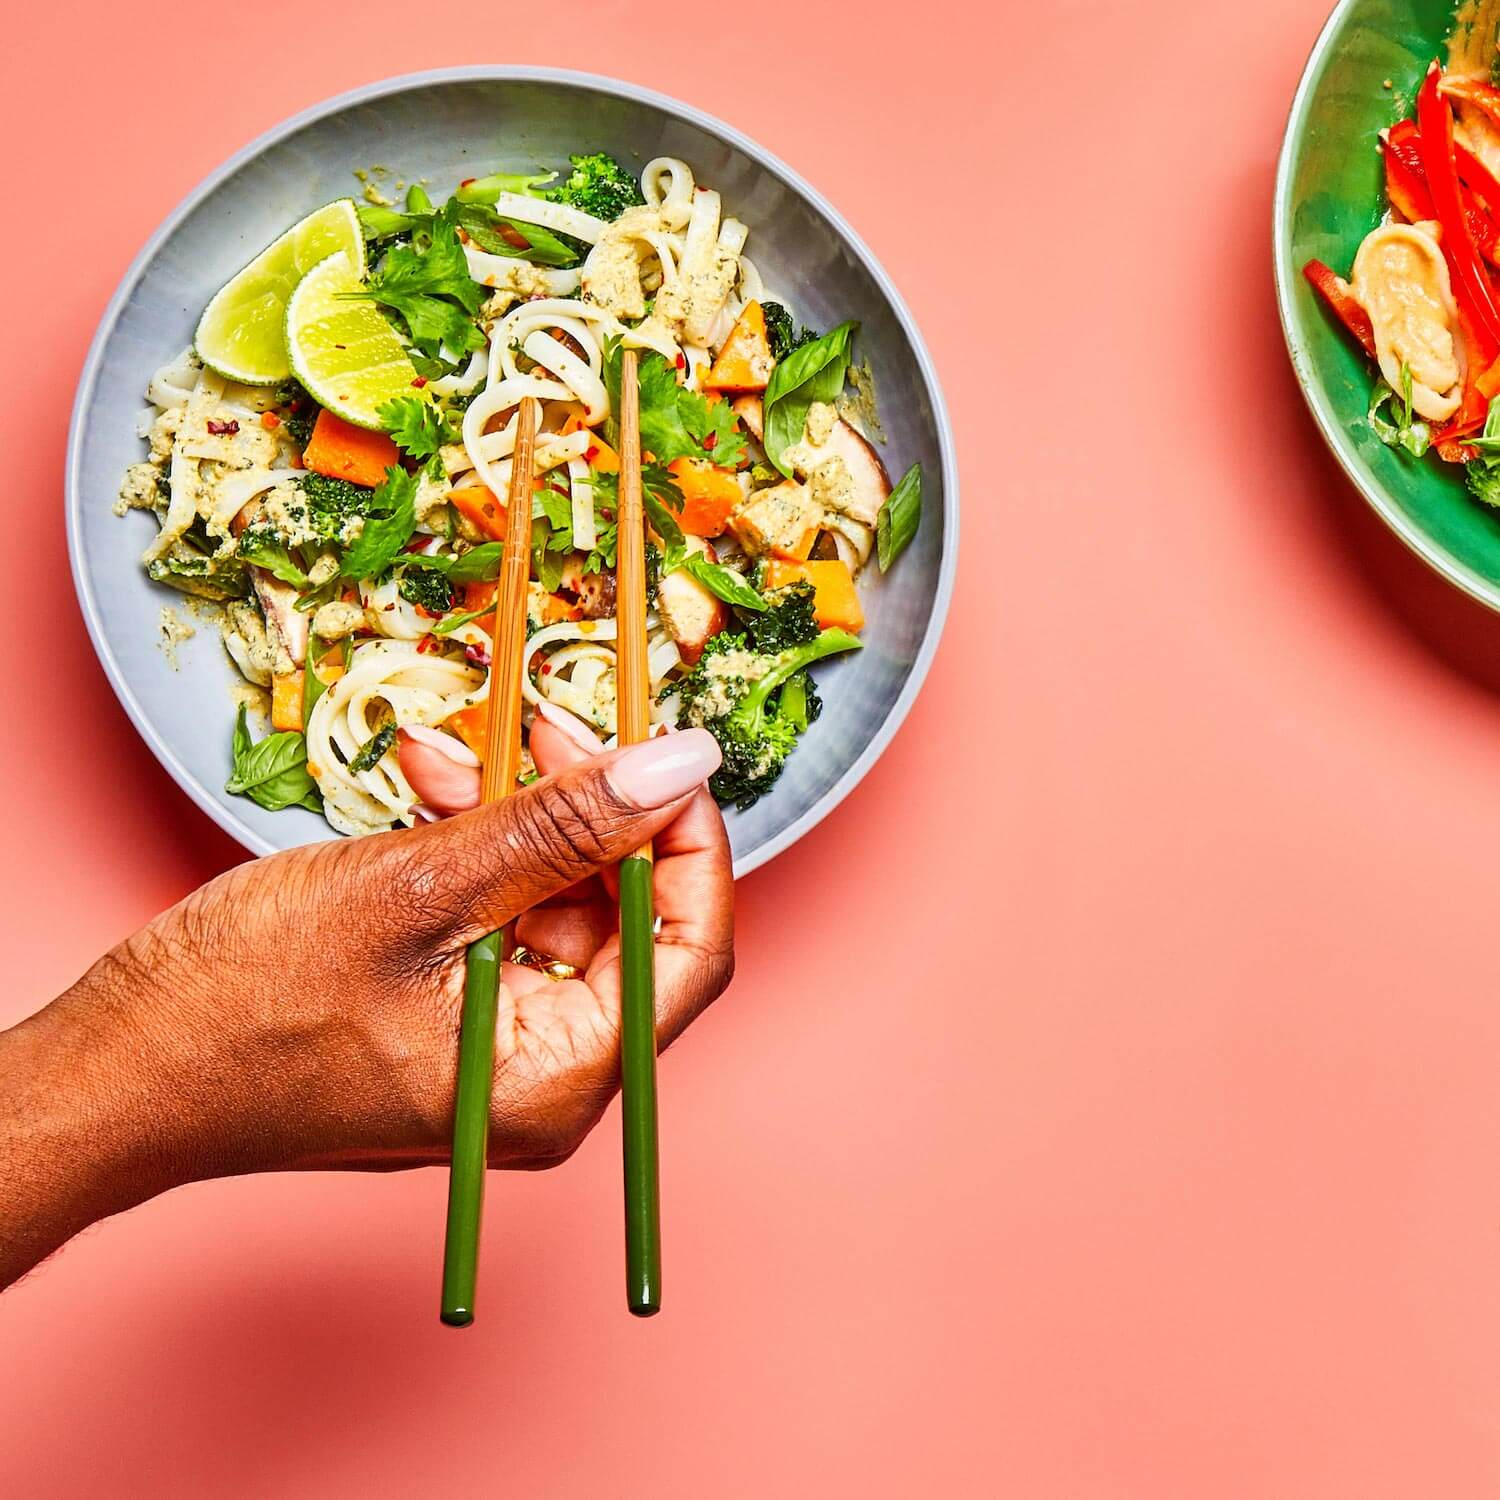 Green Curry Noodles in a dish being picked up by a woman holding chopsticks.